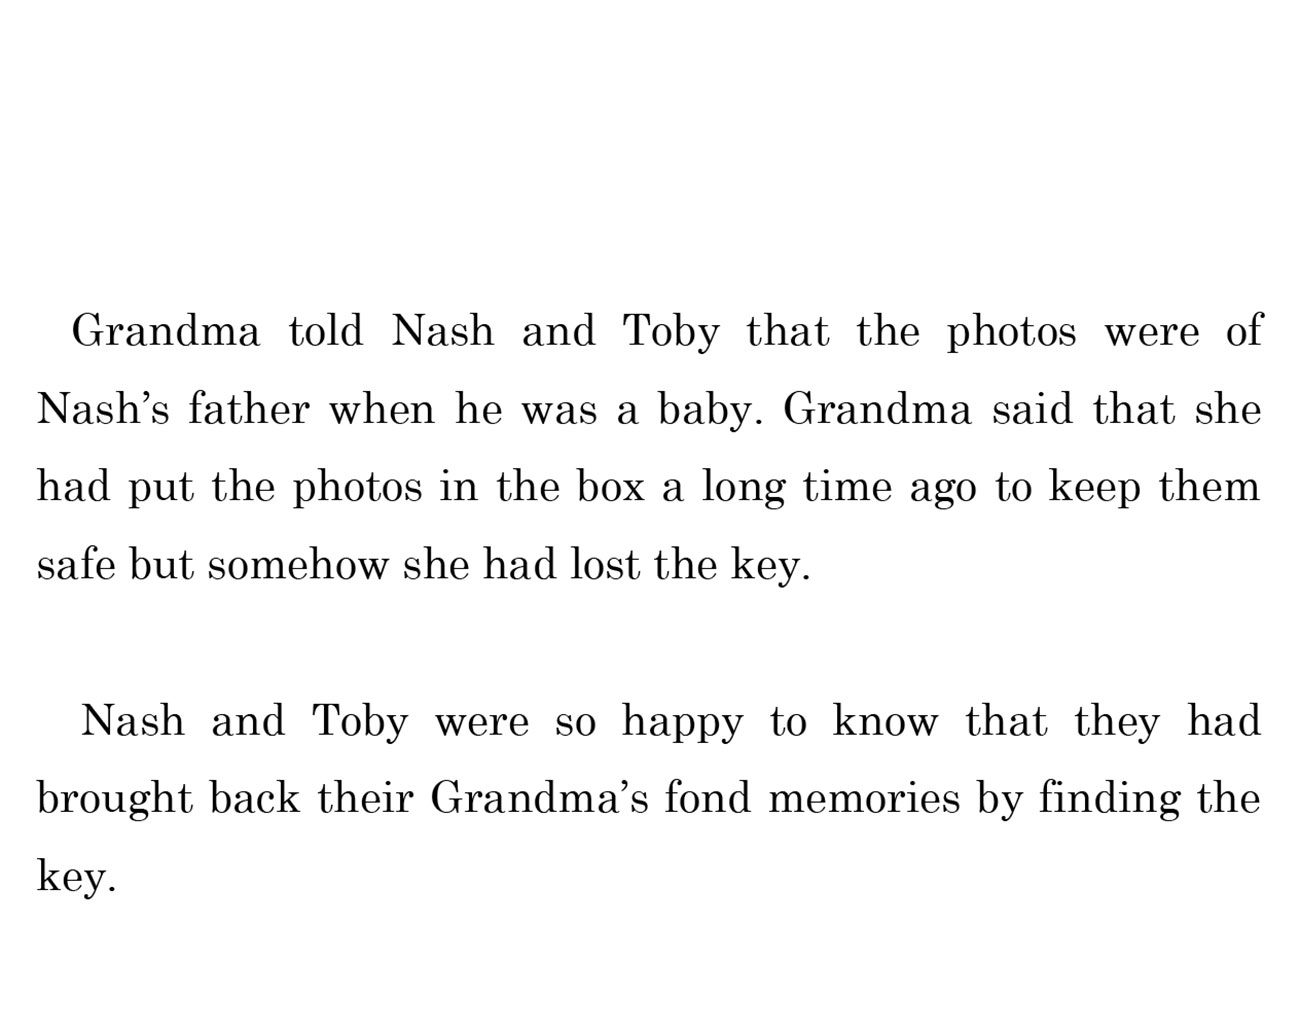 kids short story 'Down the memory lane with nash' by uma bala devarakonda - page 16